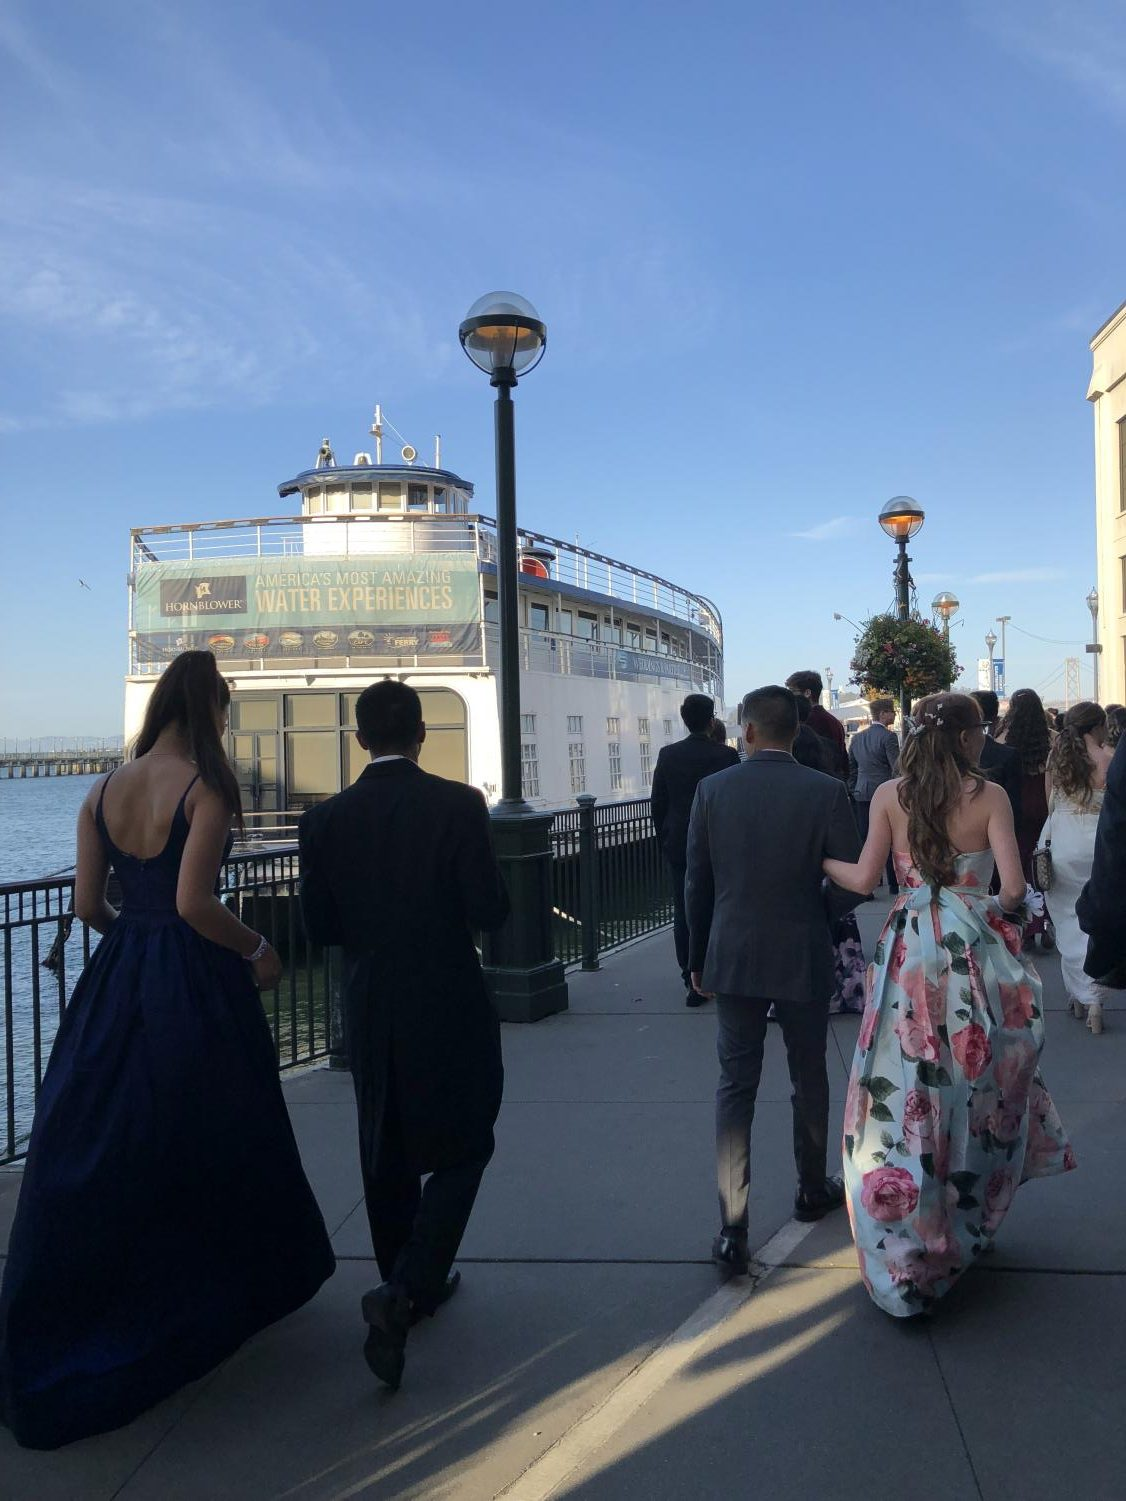 West High students boarding the San Francisco Hornblower